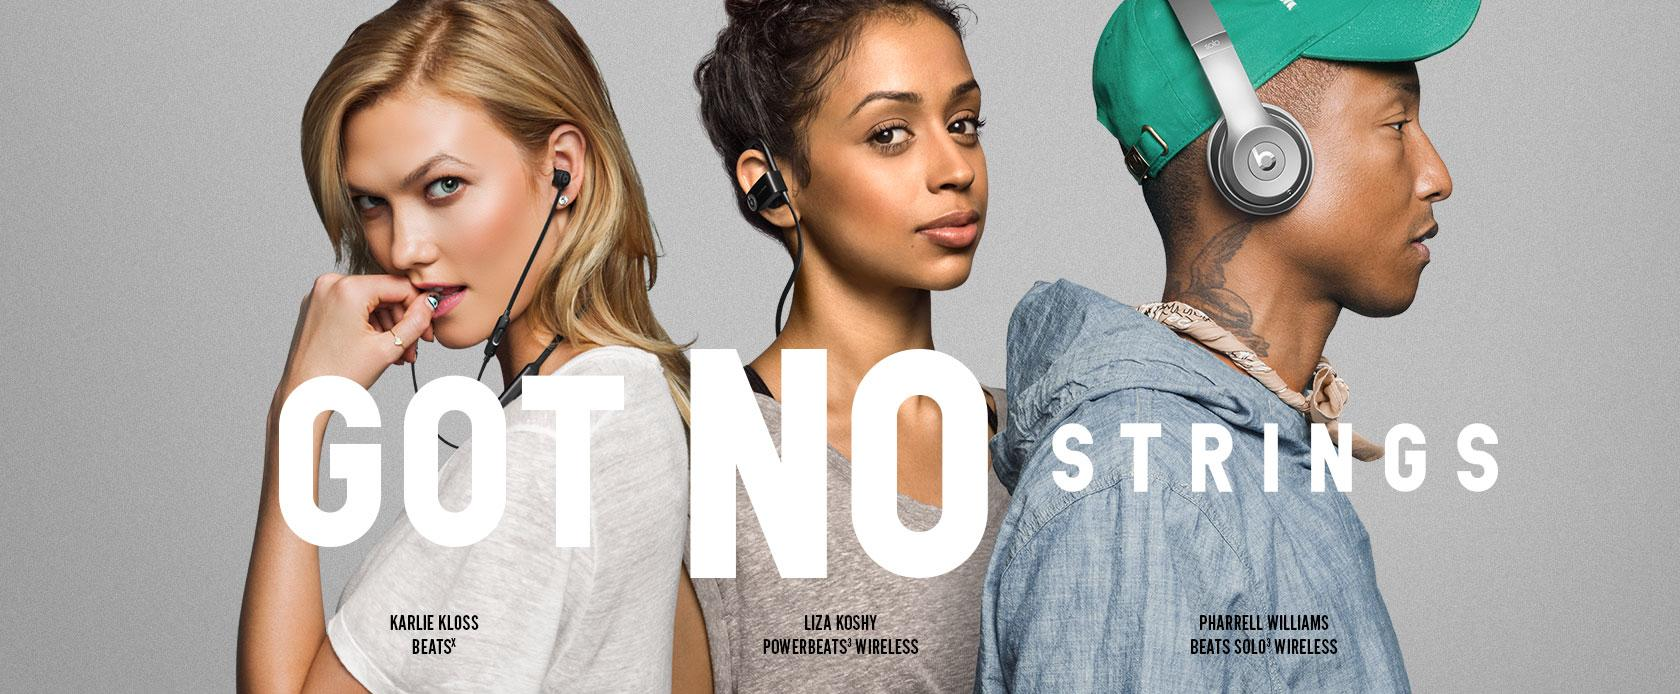 The Beats headphone is a successful Jobs-to-be-Done example